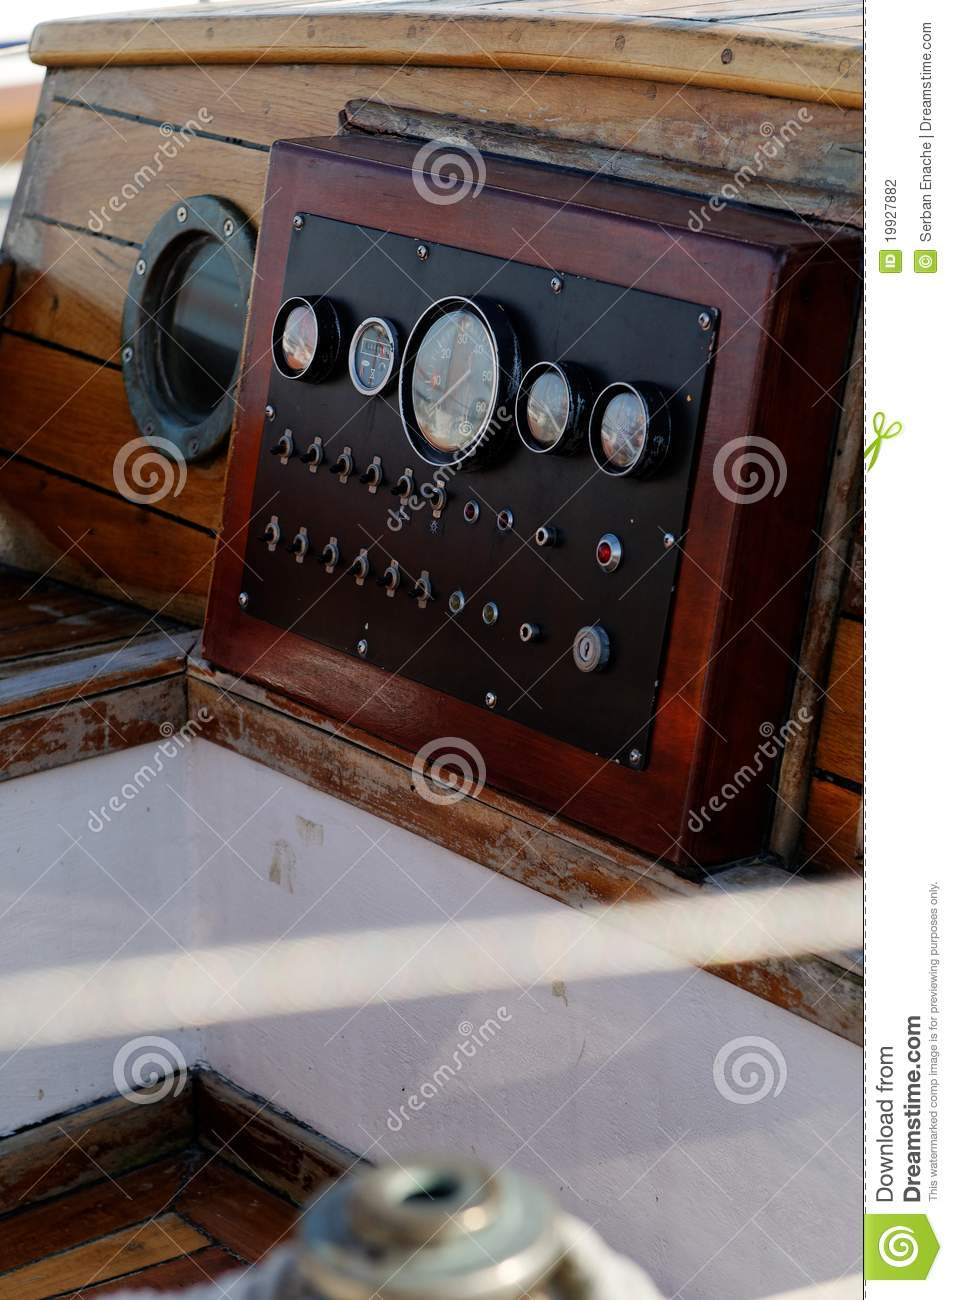 Antique Boat Instrument Panel Stock Photo - Image of aged ...